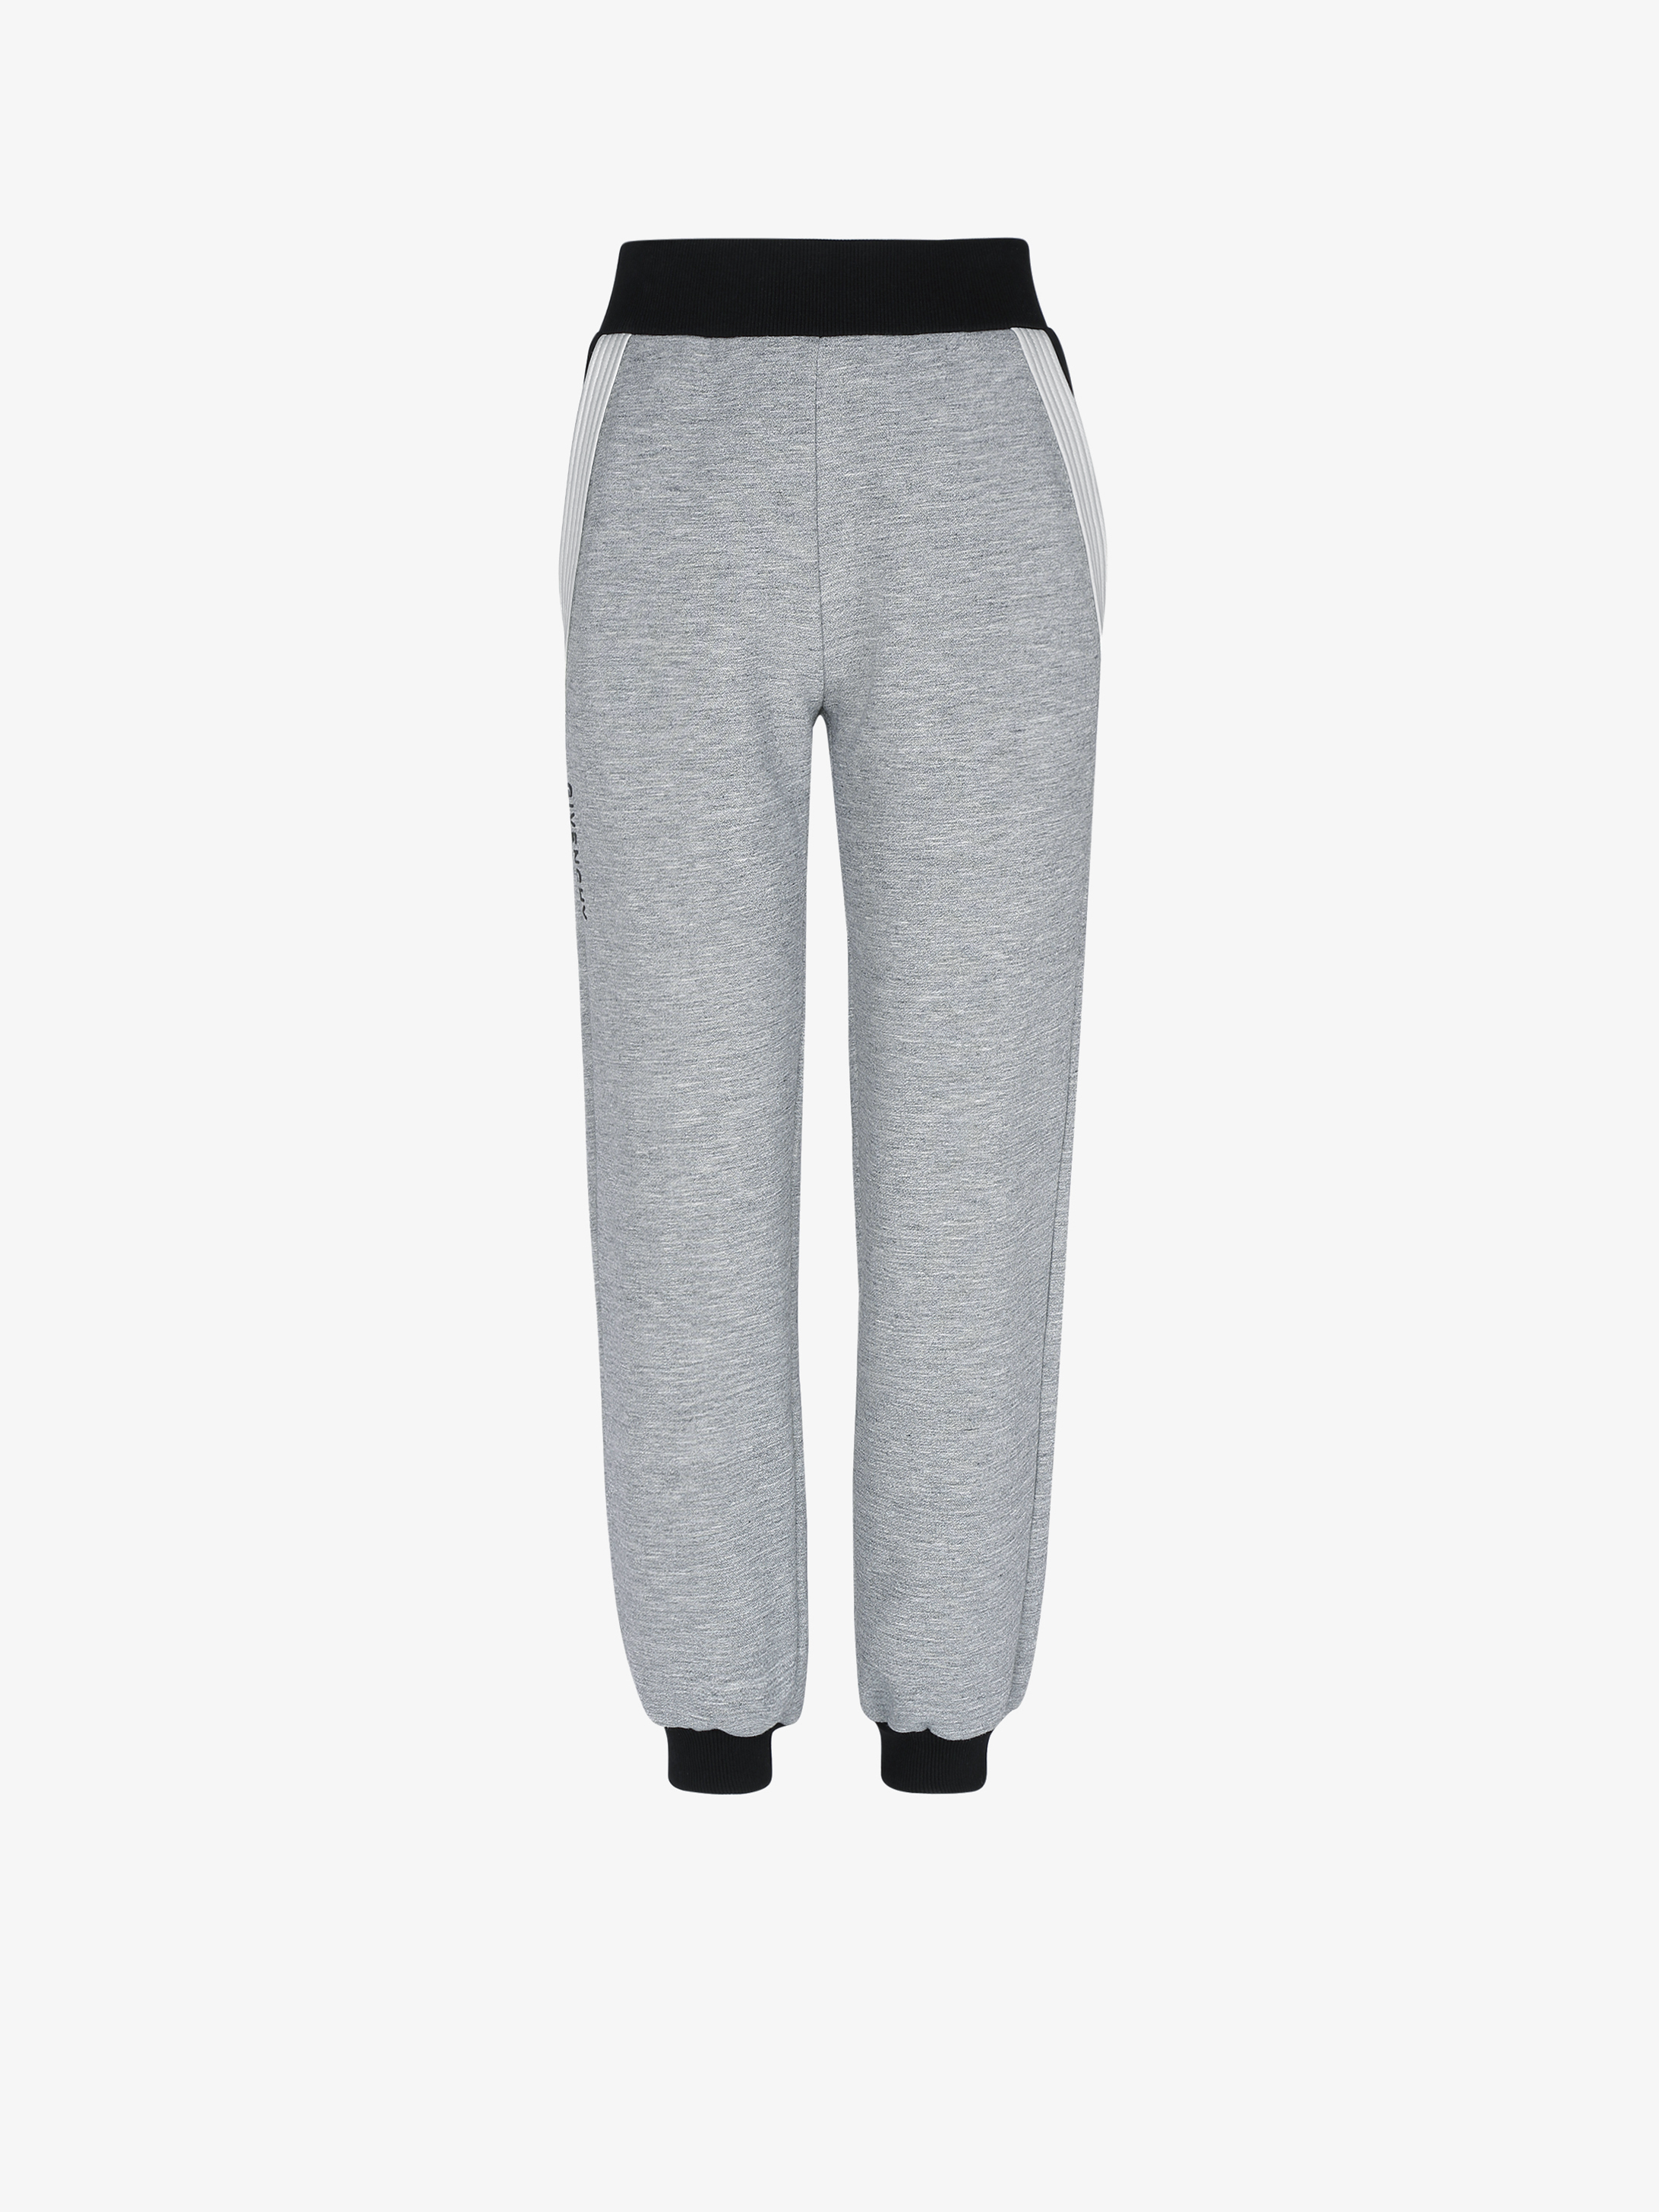 GIVENCHY jogger pants with contrasting details